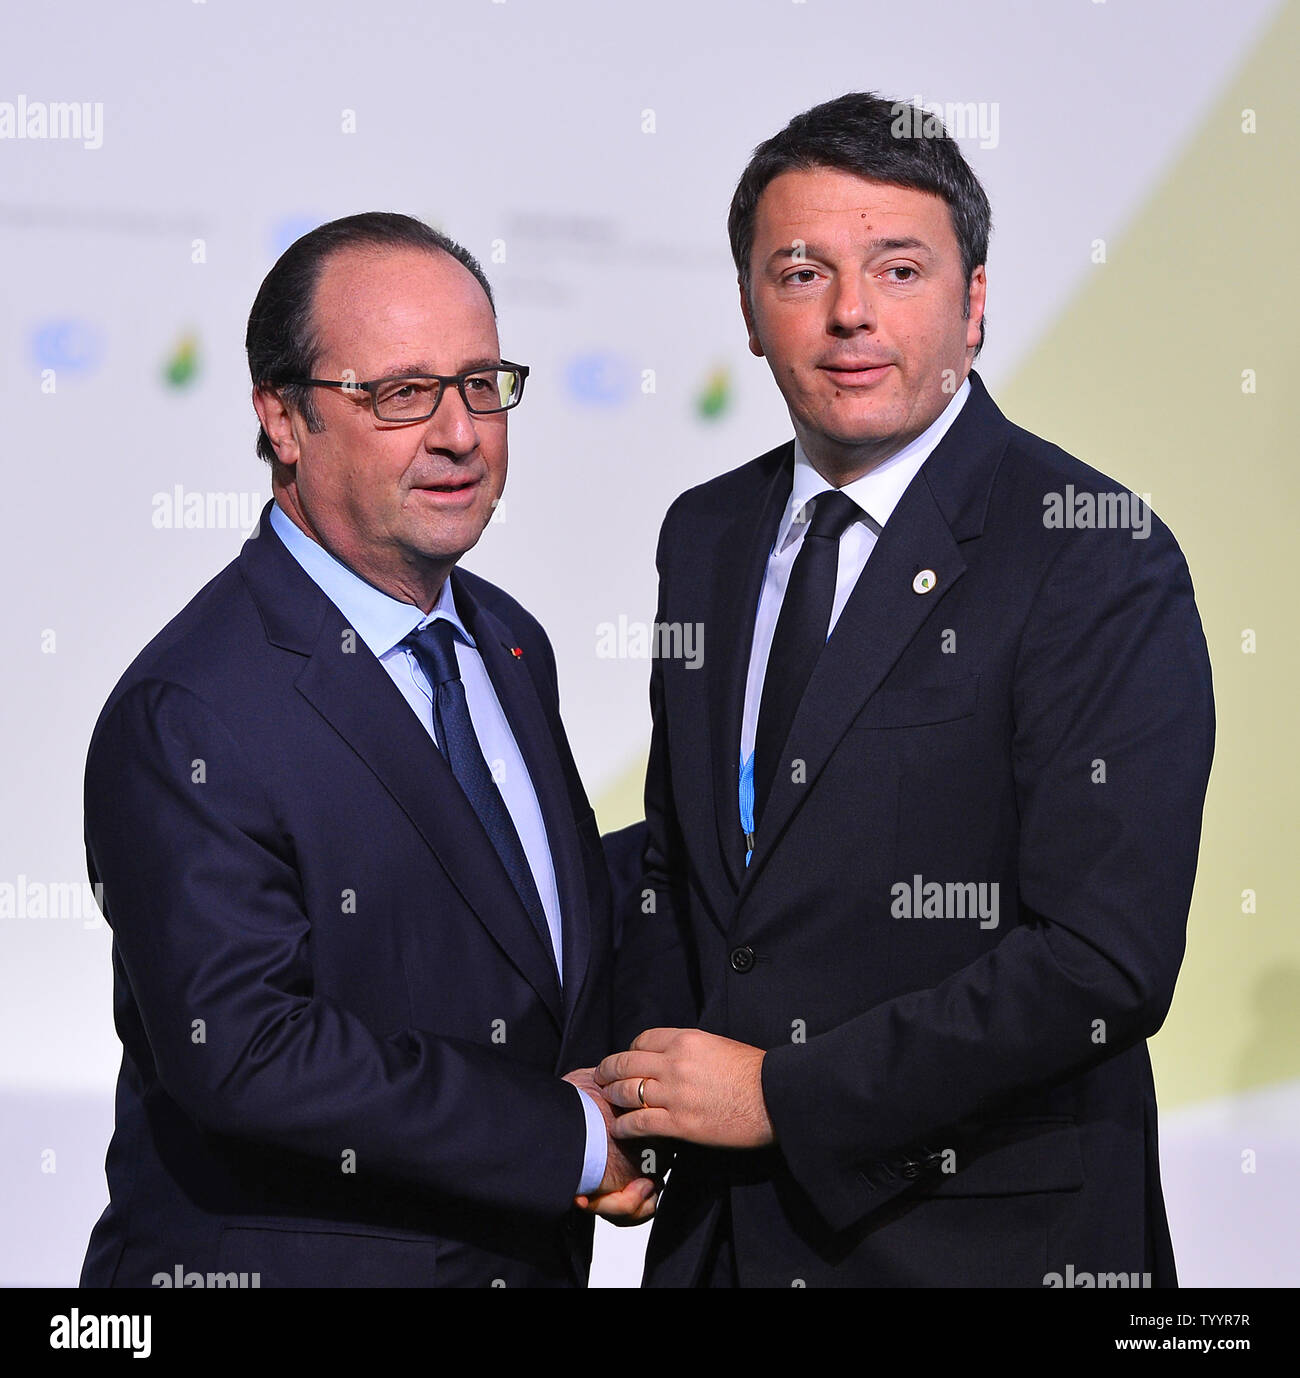 Italian Prime Minister Matteo Renzi (R) is greeted by French President Francois Hollande at the United Nation's 21st climate change conference at Le Bourget near Paris on November 30, 2015. The almost 150 heads of state and representatives from 200 countries in attendance will attempt to negotiate a legally binding agreement to limit worldwide carbon emissions with the goal of keeping global warming under 2 degrees Celsius.   Photo by David Silpa/UPI - Stock Image